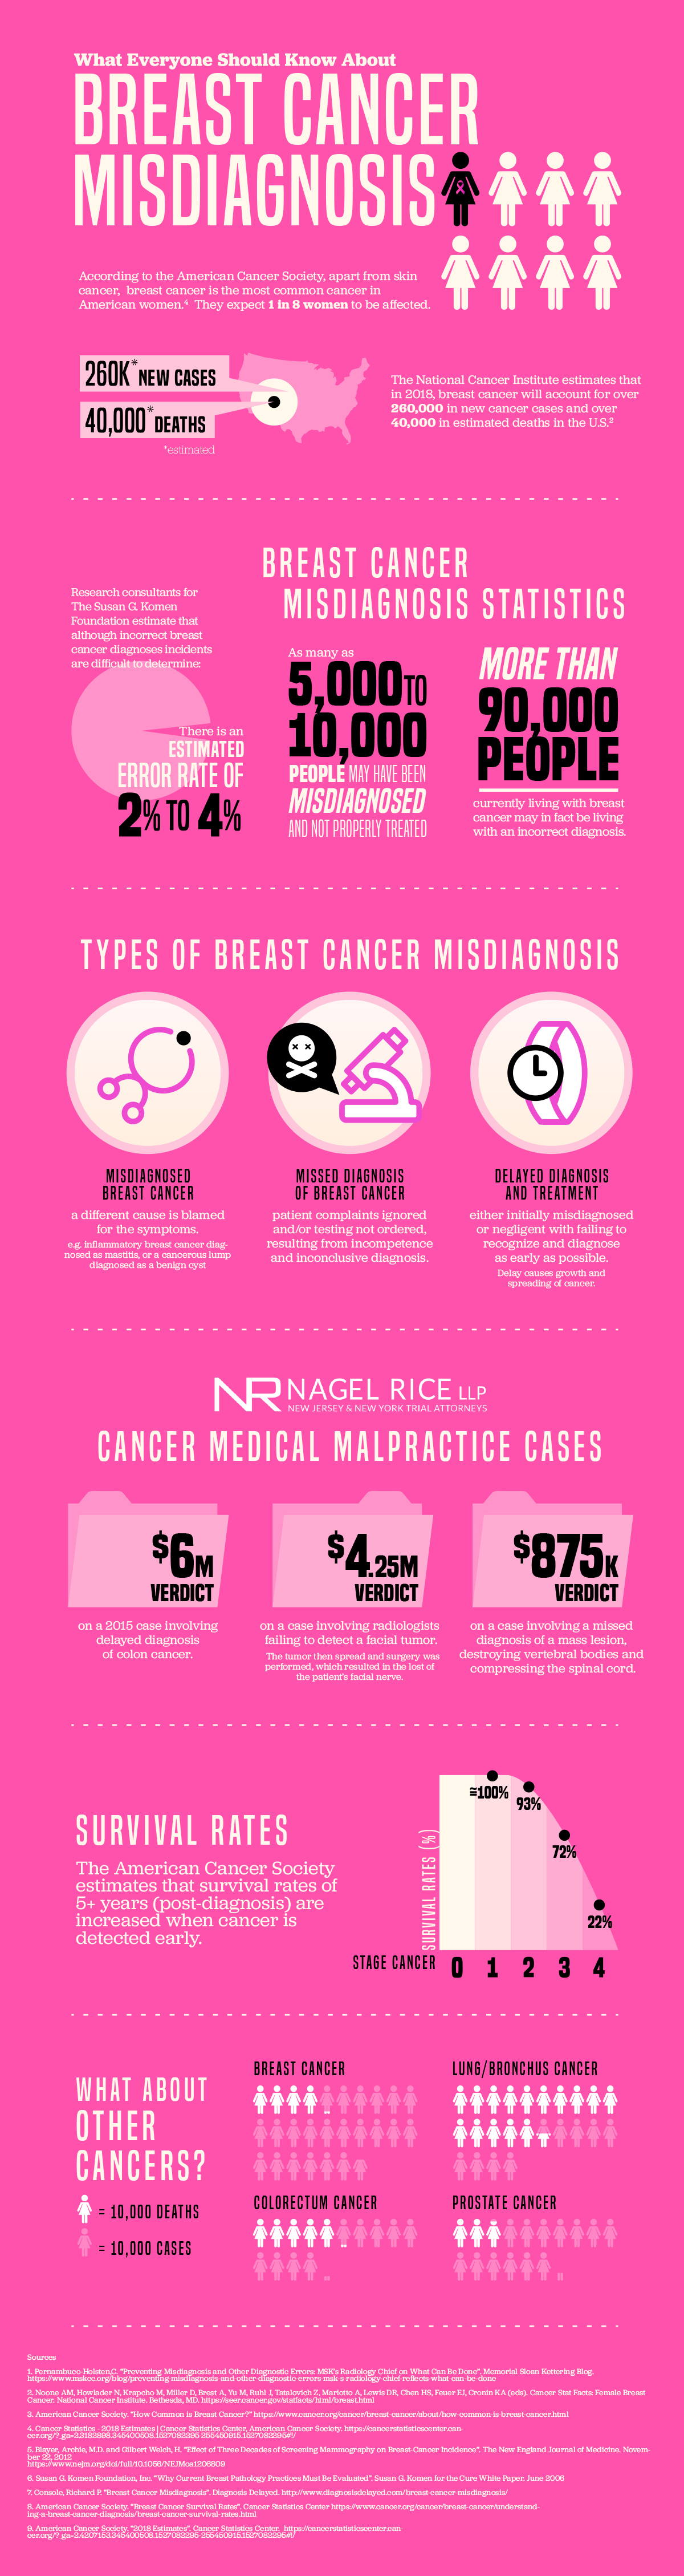 breast cancer misdiagnosis infographic